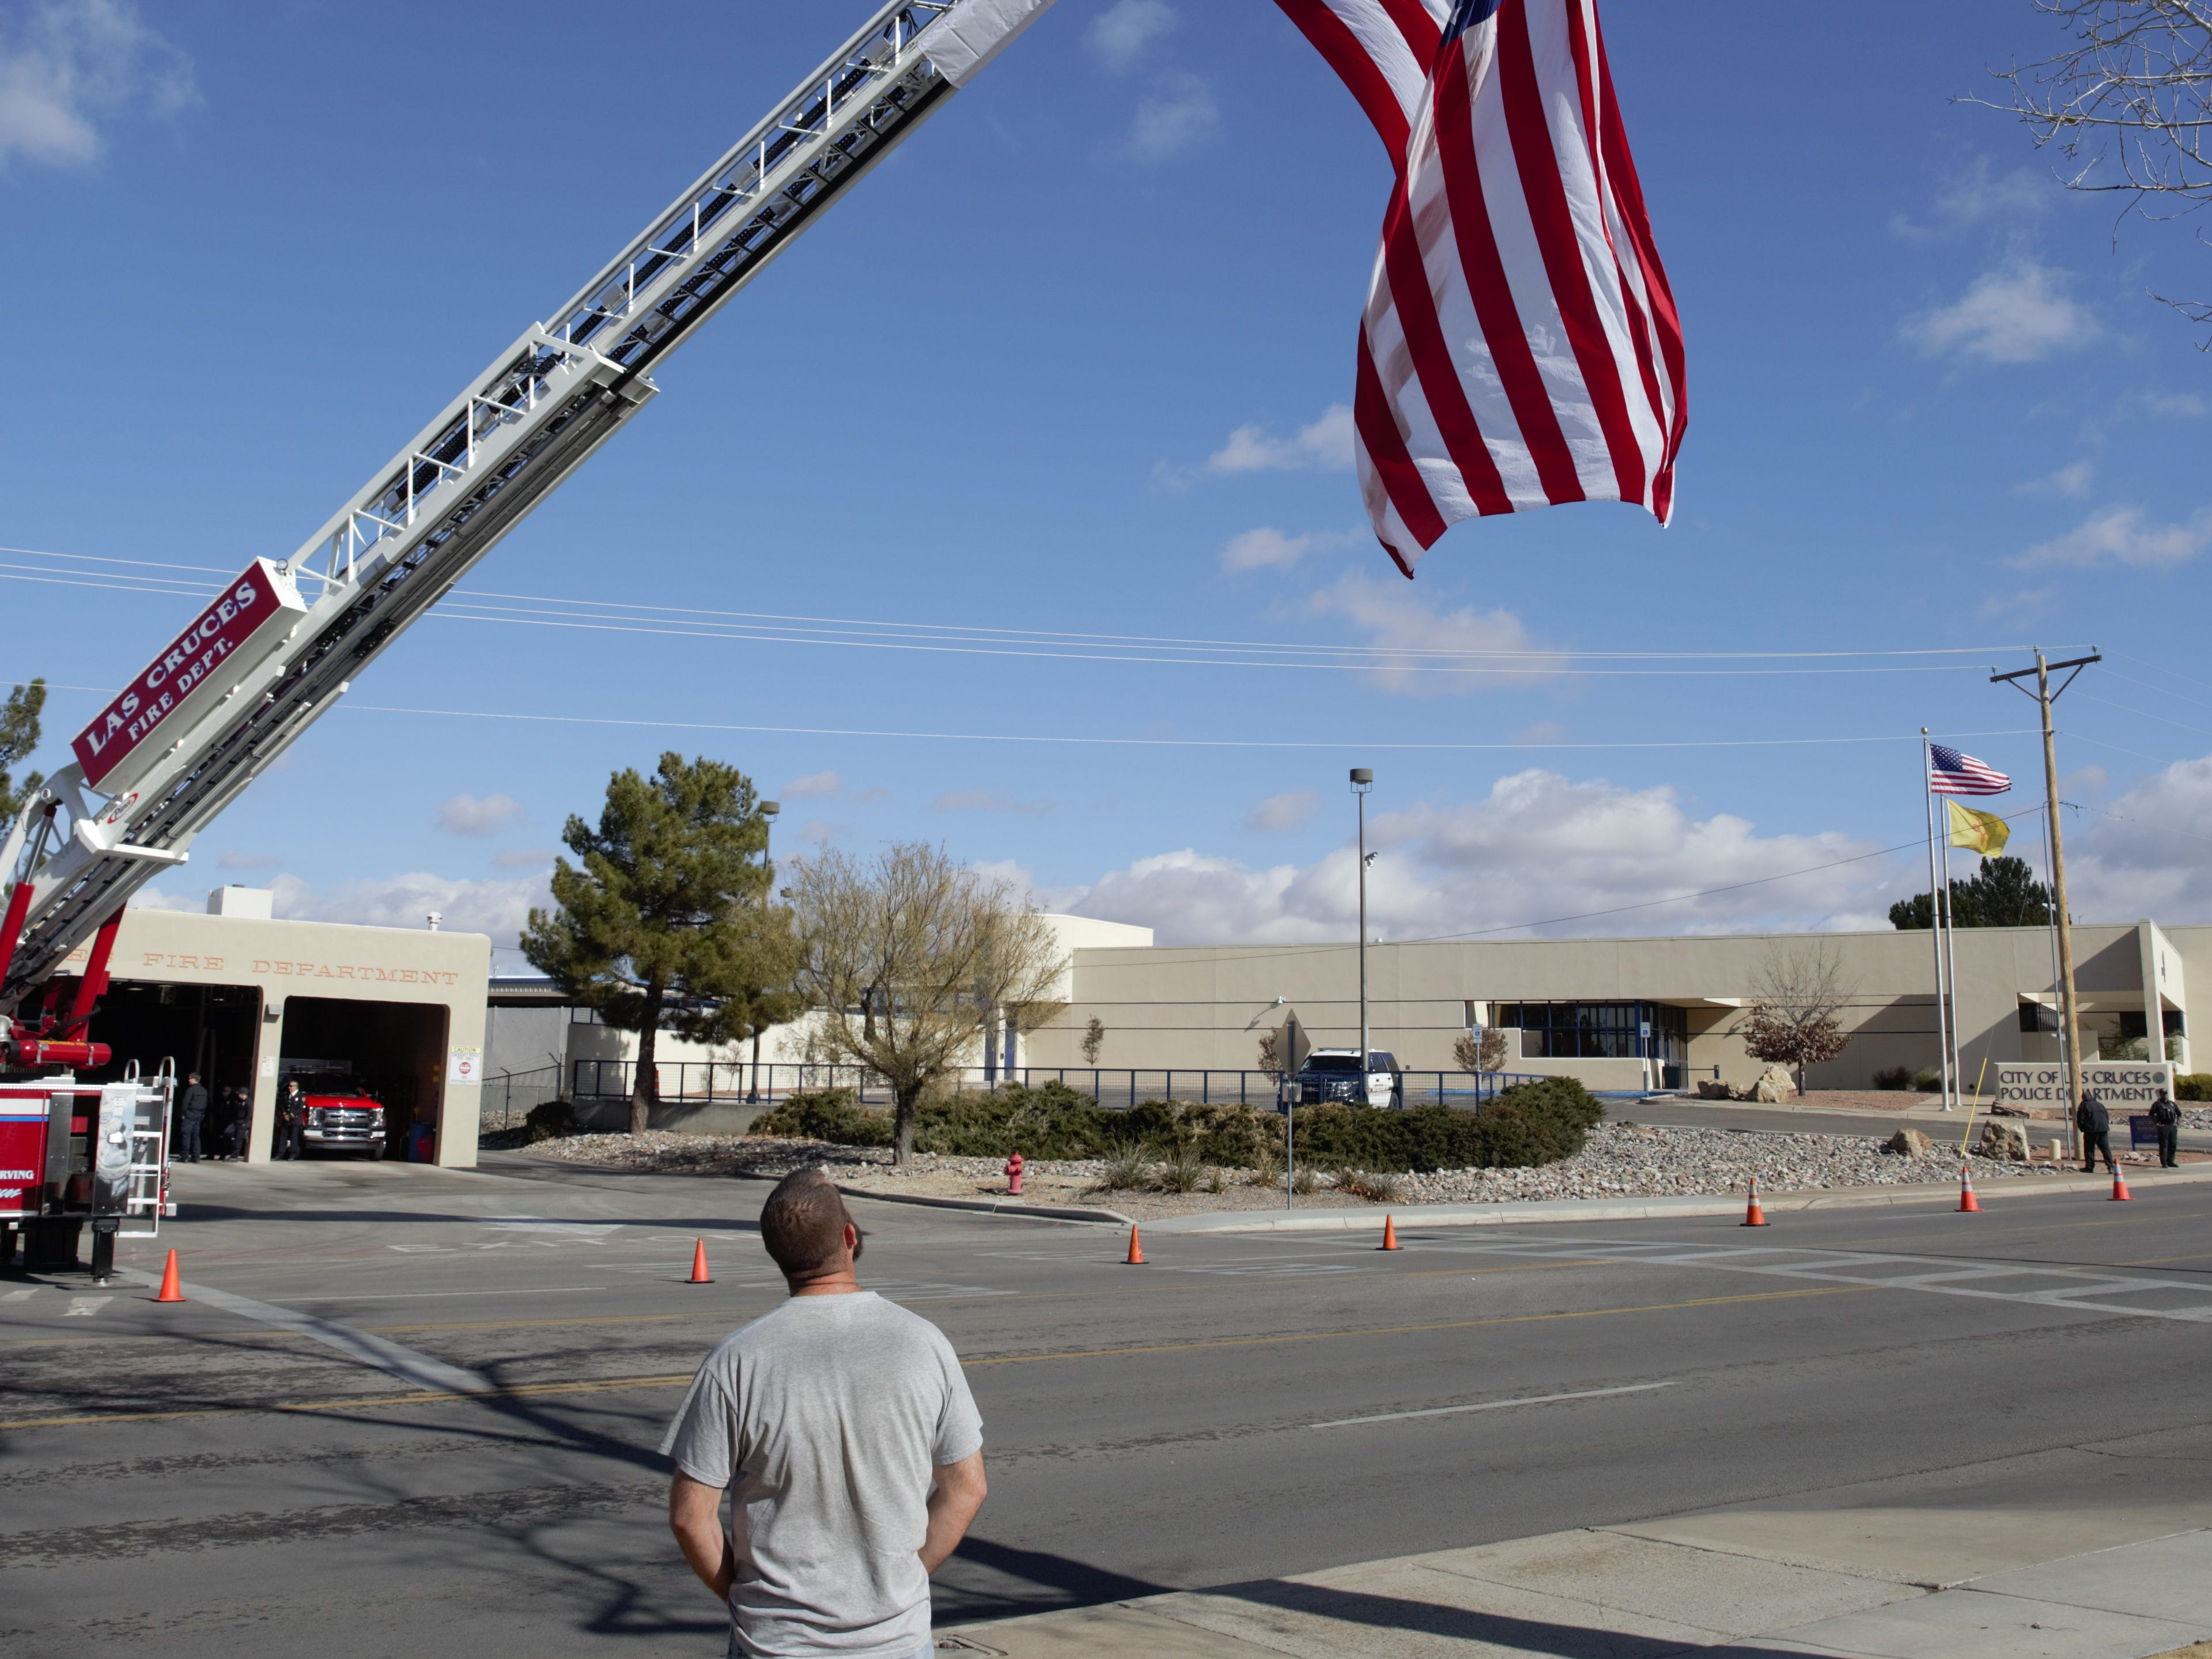 """Las Crucen Ryan Dailey was among residents who turned out Friday, Jan. 11, 2019 to pay their respects to former Las Cruces Police Department Chief Jaime Montoya, who died of cancer. Dailey said he appreciated Montoya's engagement with the community and compassion. """"I'm very saddened to see him go; I'll keep his family in my prayers and continue praying for him,"""" Dailey says."""